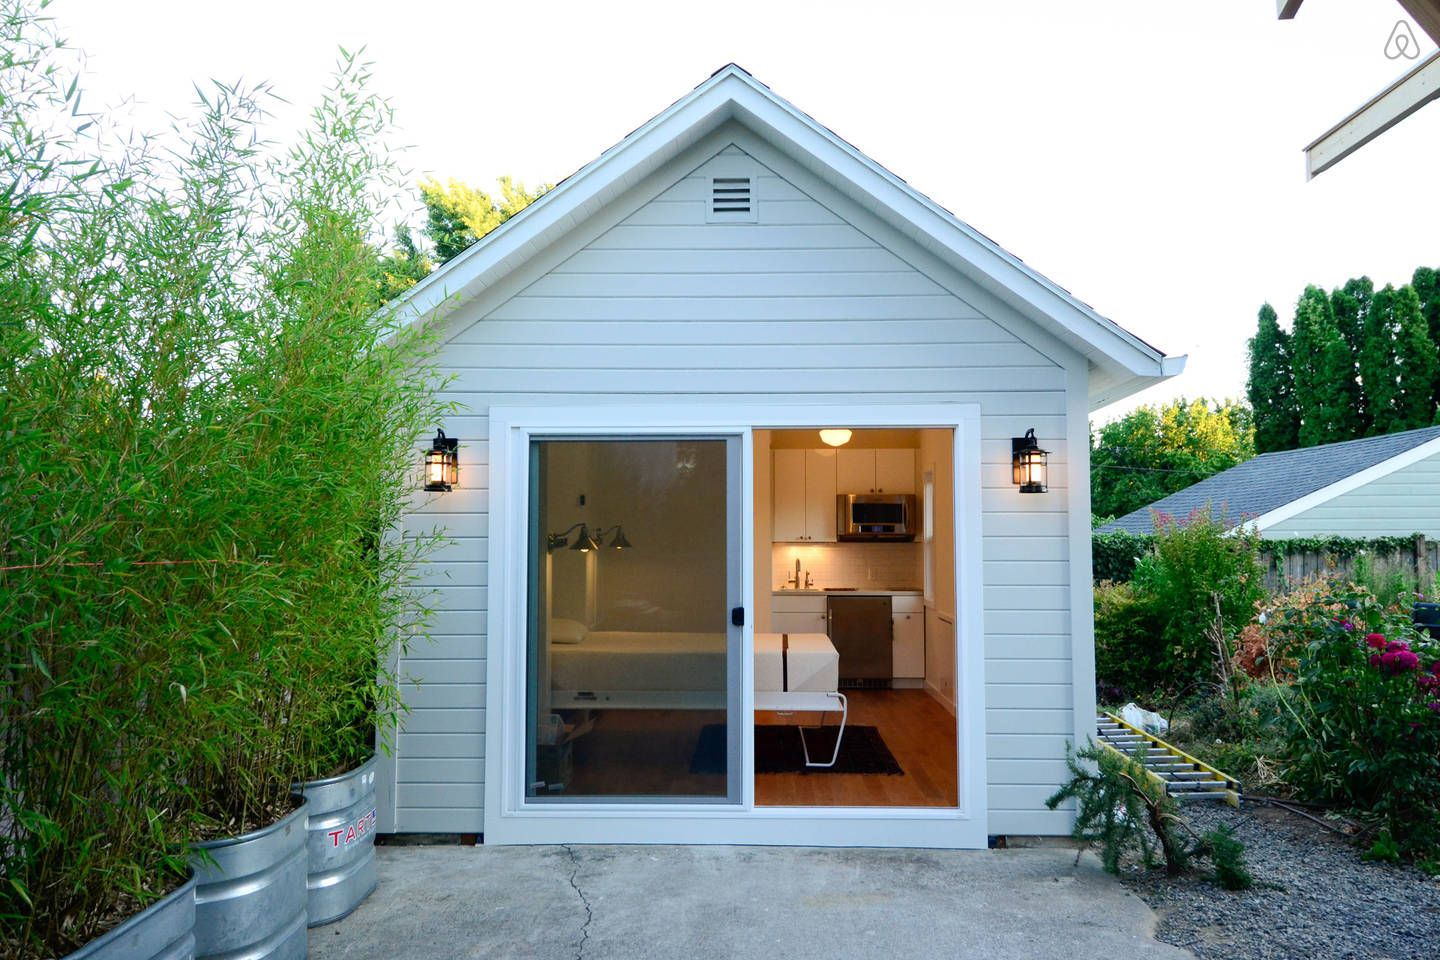 front view of little house detached studio with murphy bed